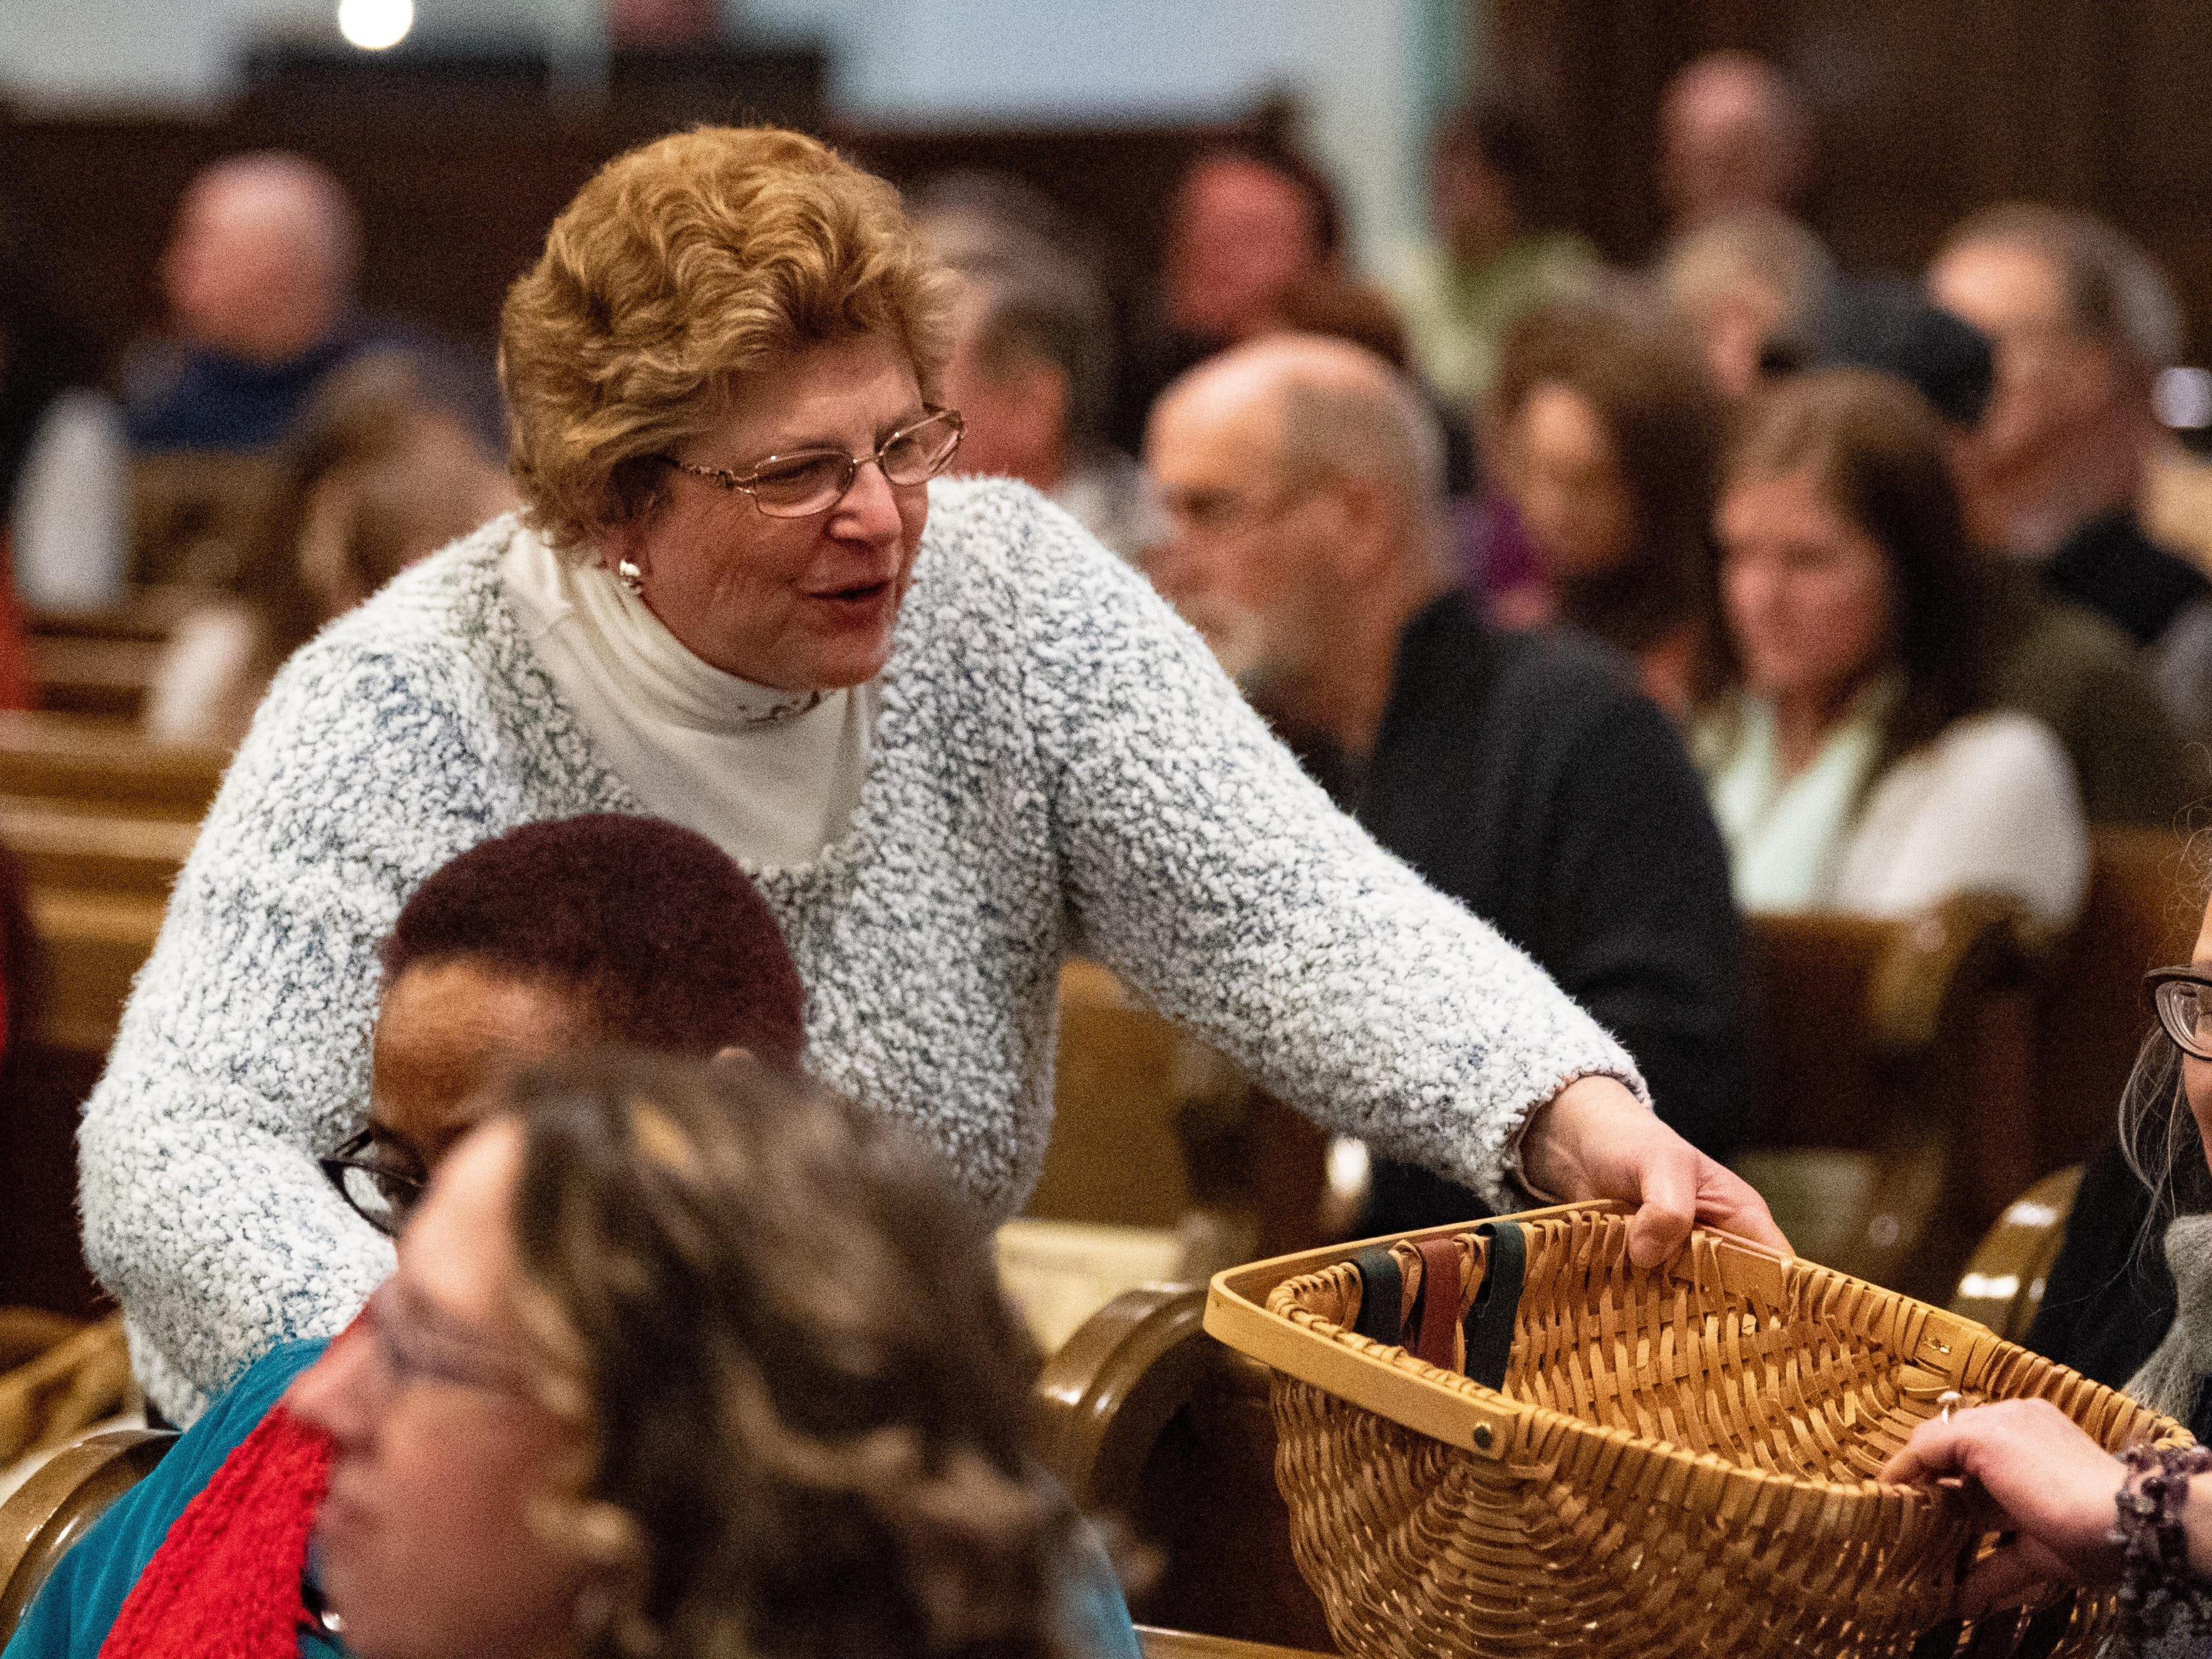 Near the end of the concert, members of the church pass around a basket collecting offerings during the 21st annual Jazz Vespers concert at First Presbyterian Church in York, January 12, 2019.